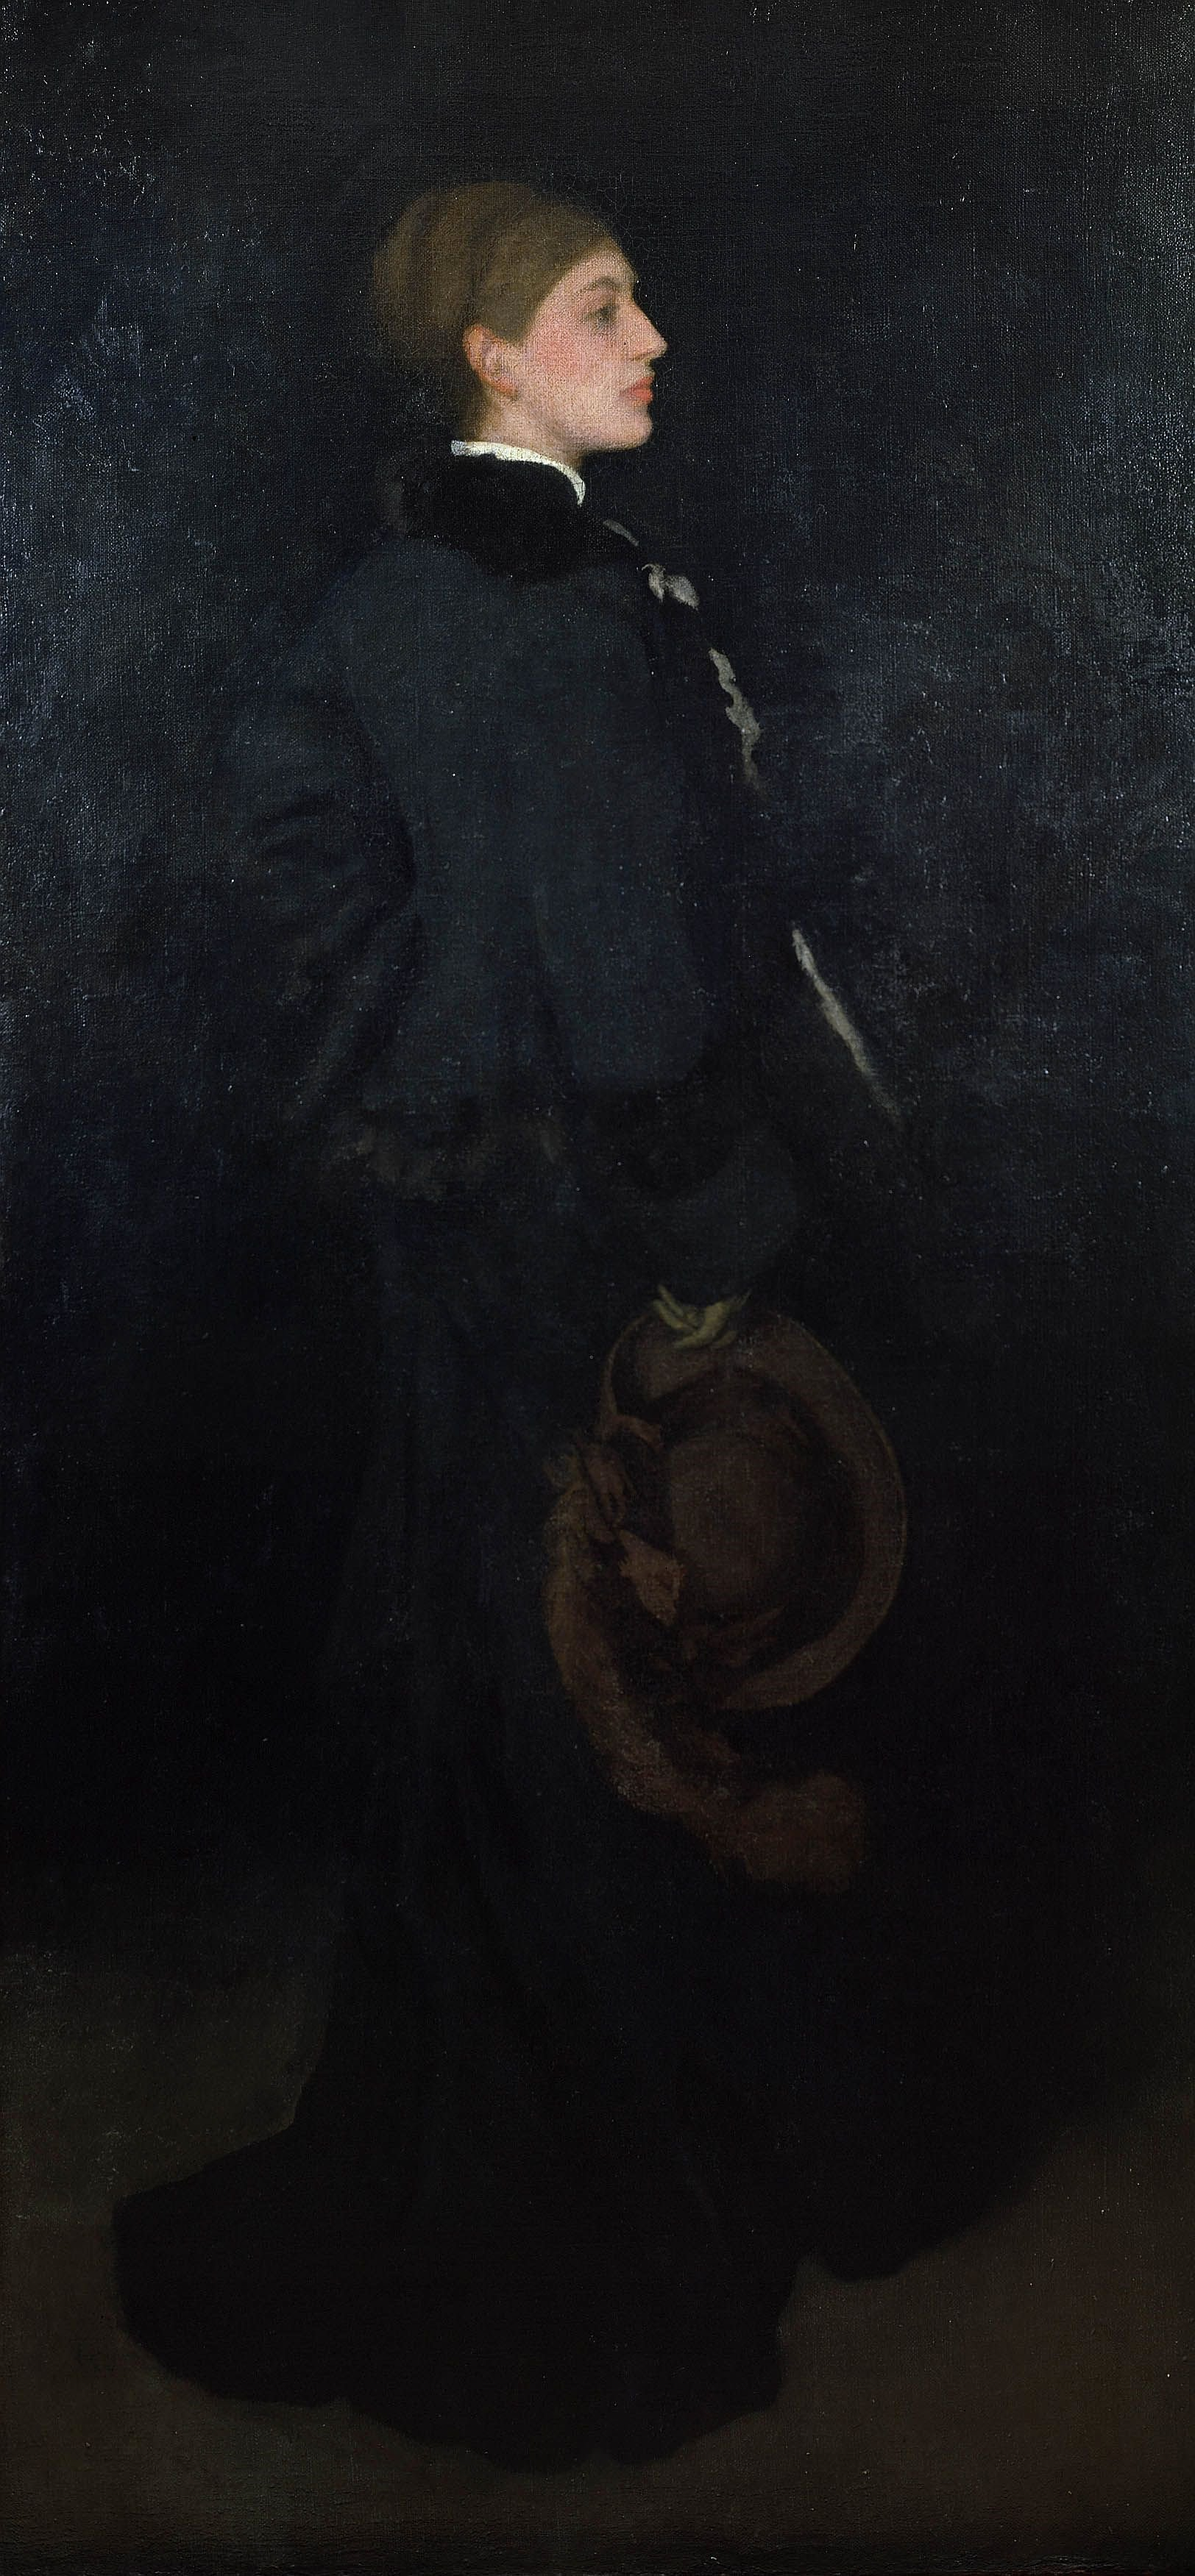 Rosa_Corder,_by_James_McNeill_Whistler